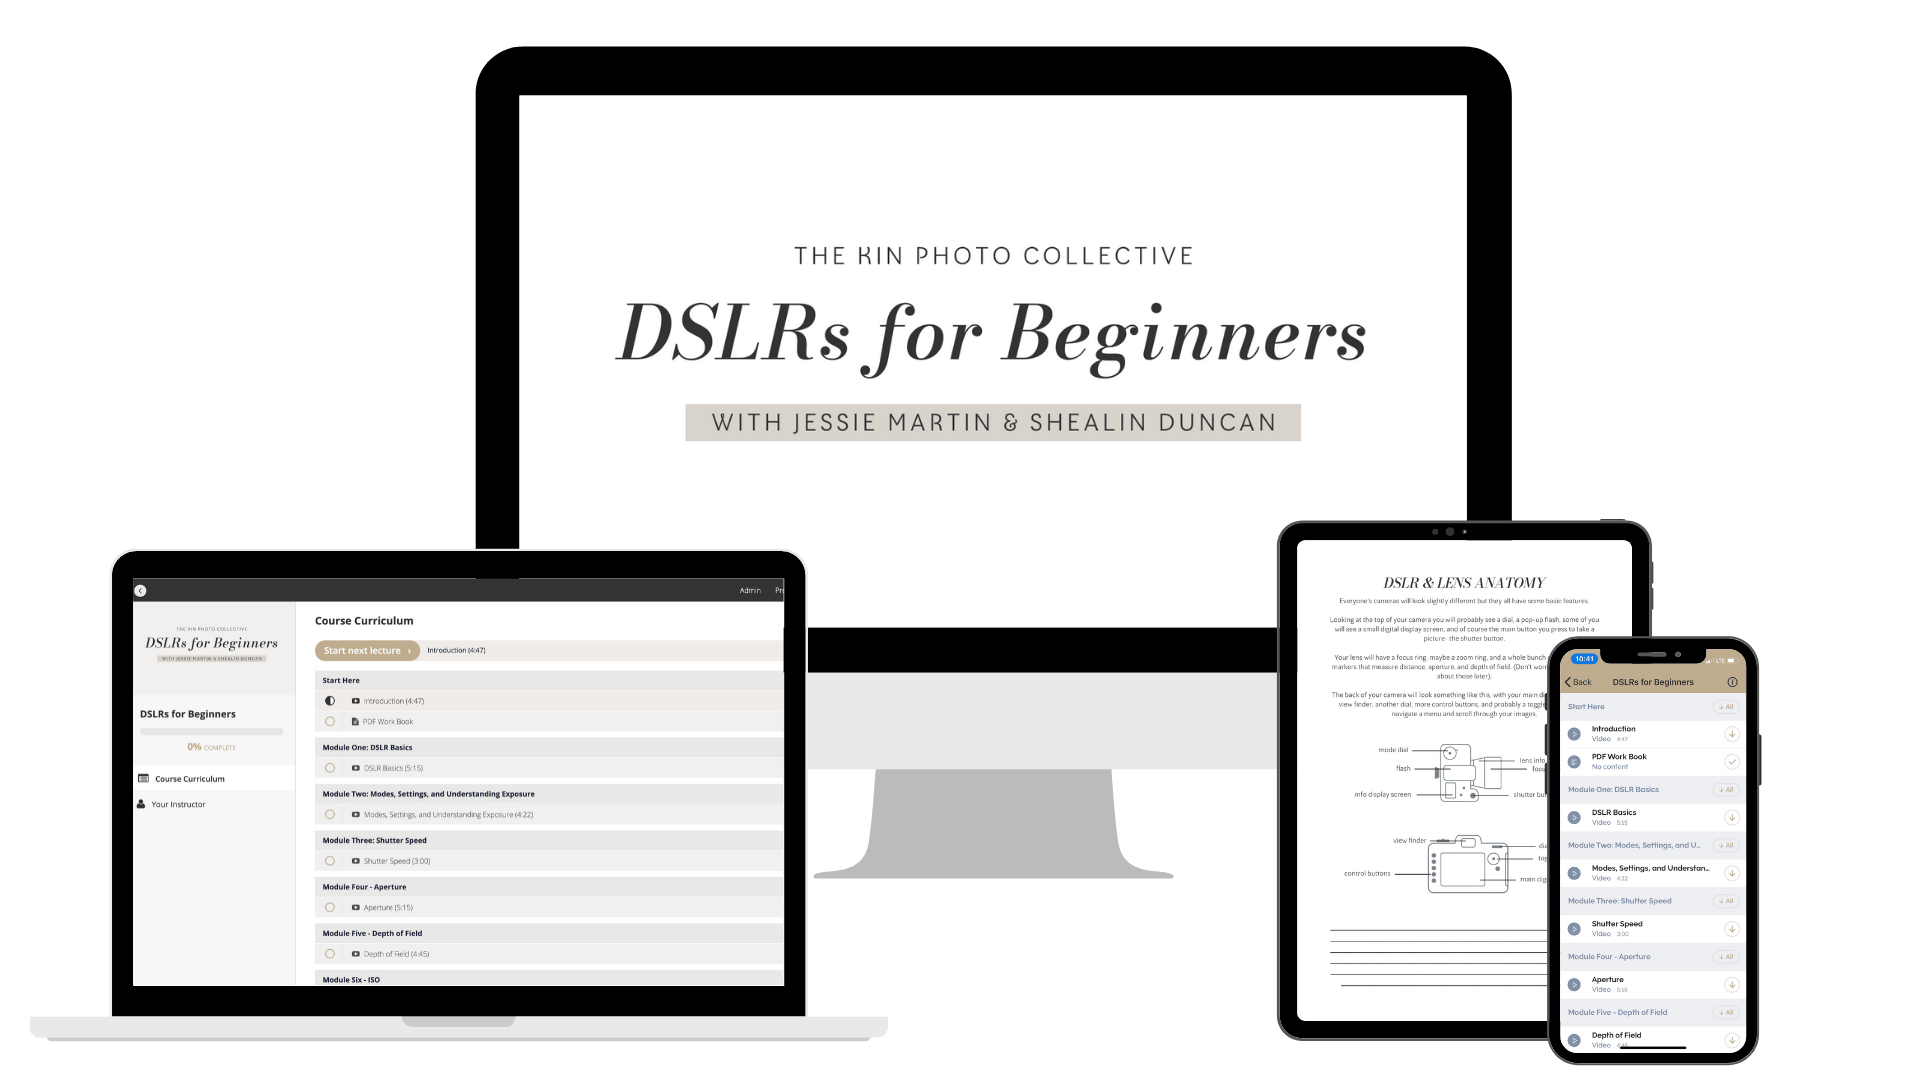 DSLRs for Beginners — Jessie Martin